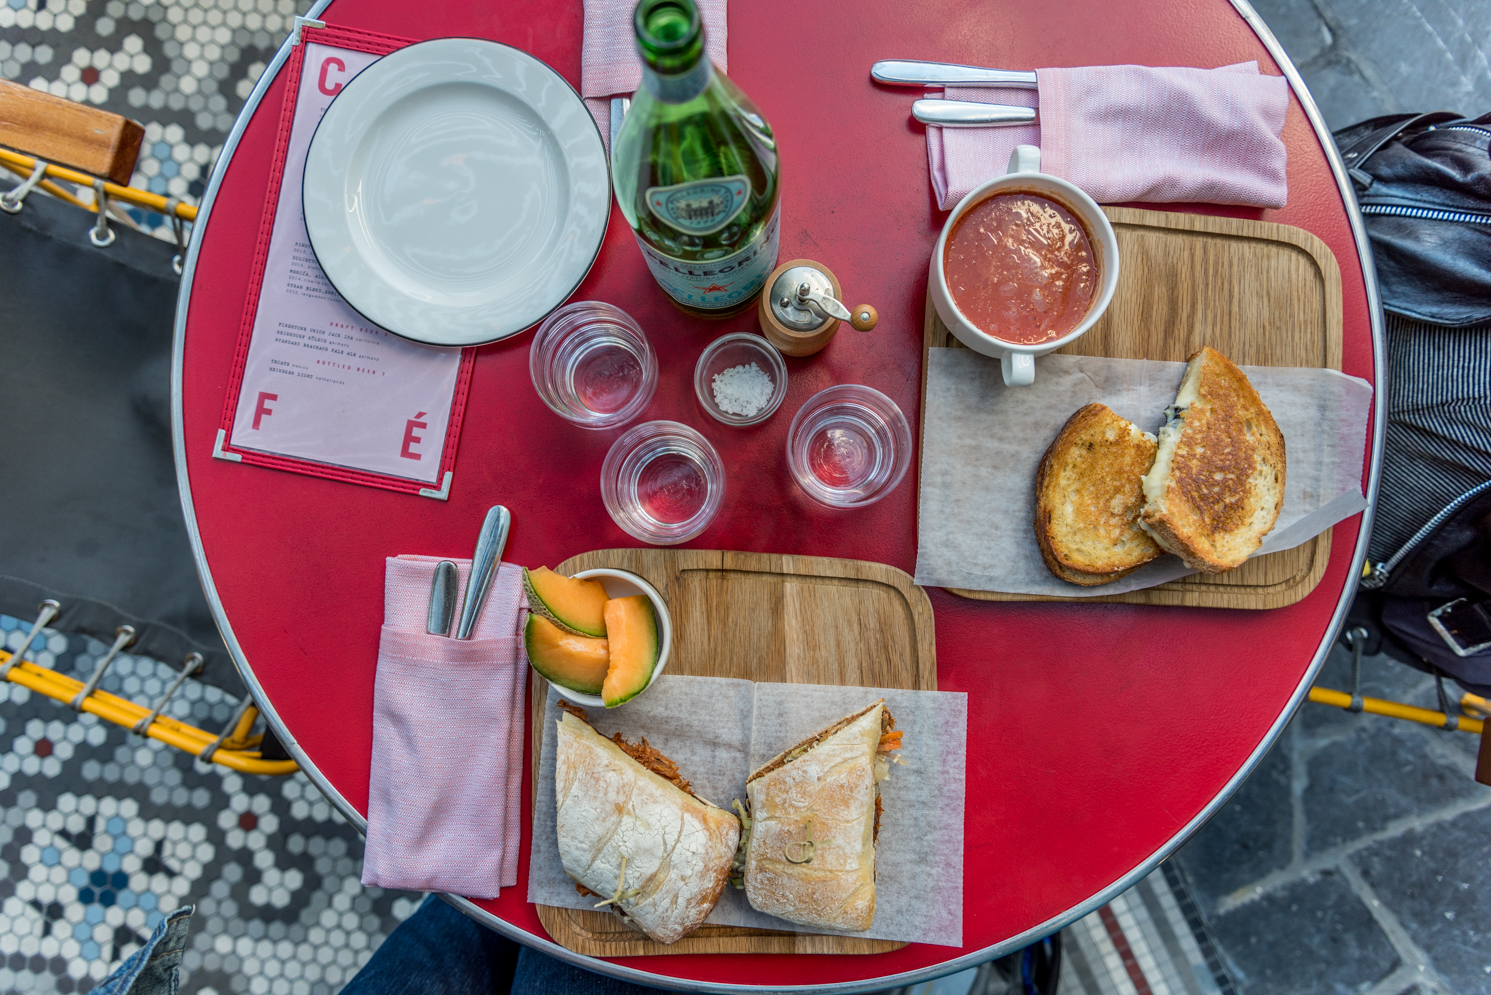 ROCK MAMA NYC LIFESTYLE BLOG - THE CAFE AT THE STANDARD HOTEL EAST VILLAGE